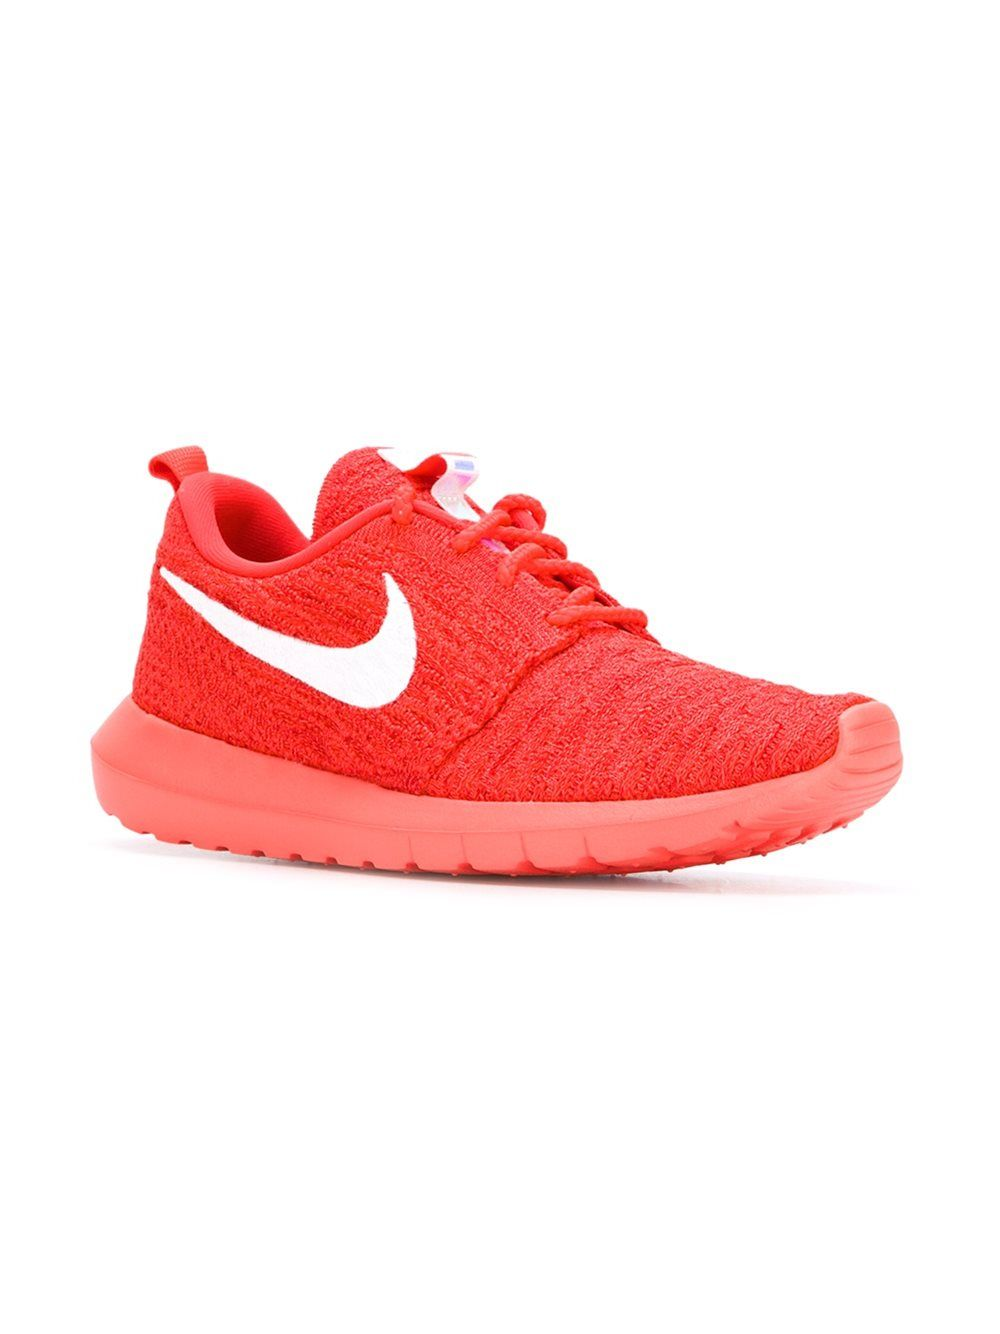 outlet store 86e07 fadce tenis nike para mujer, tenis nike mujer blancos, tenis nike mujer negro,  zapatos